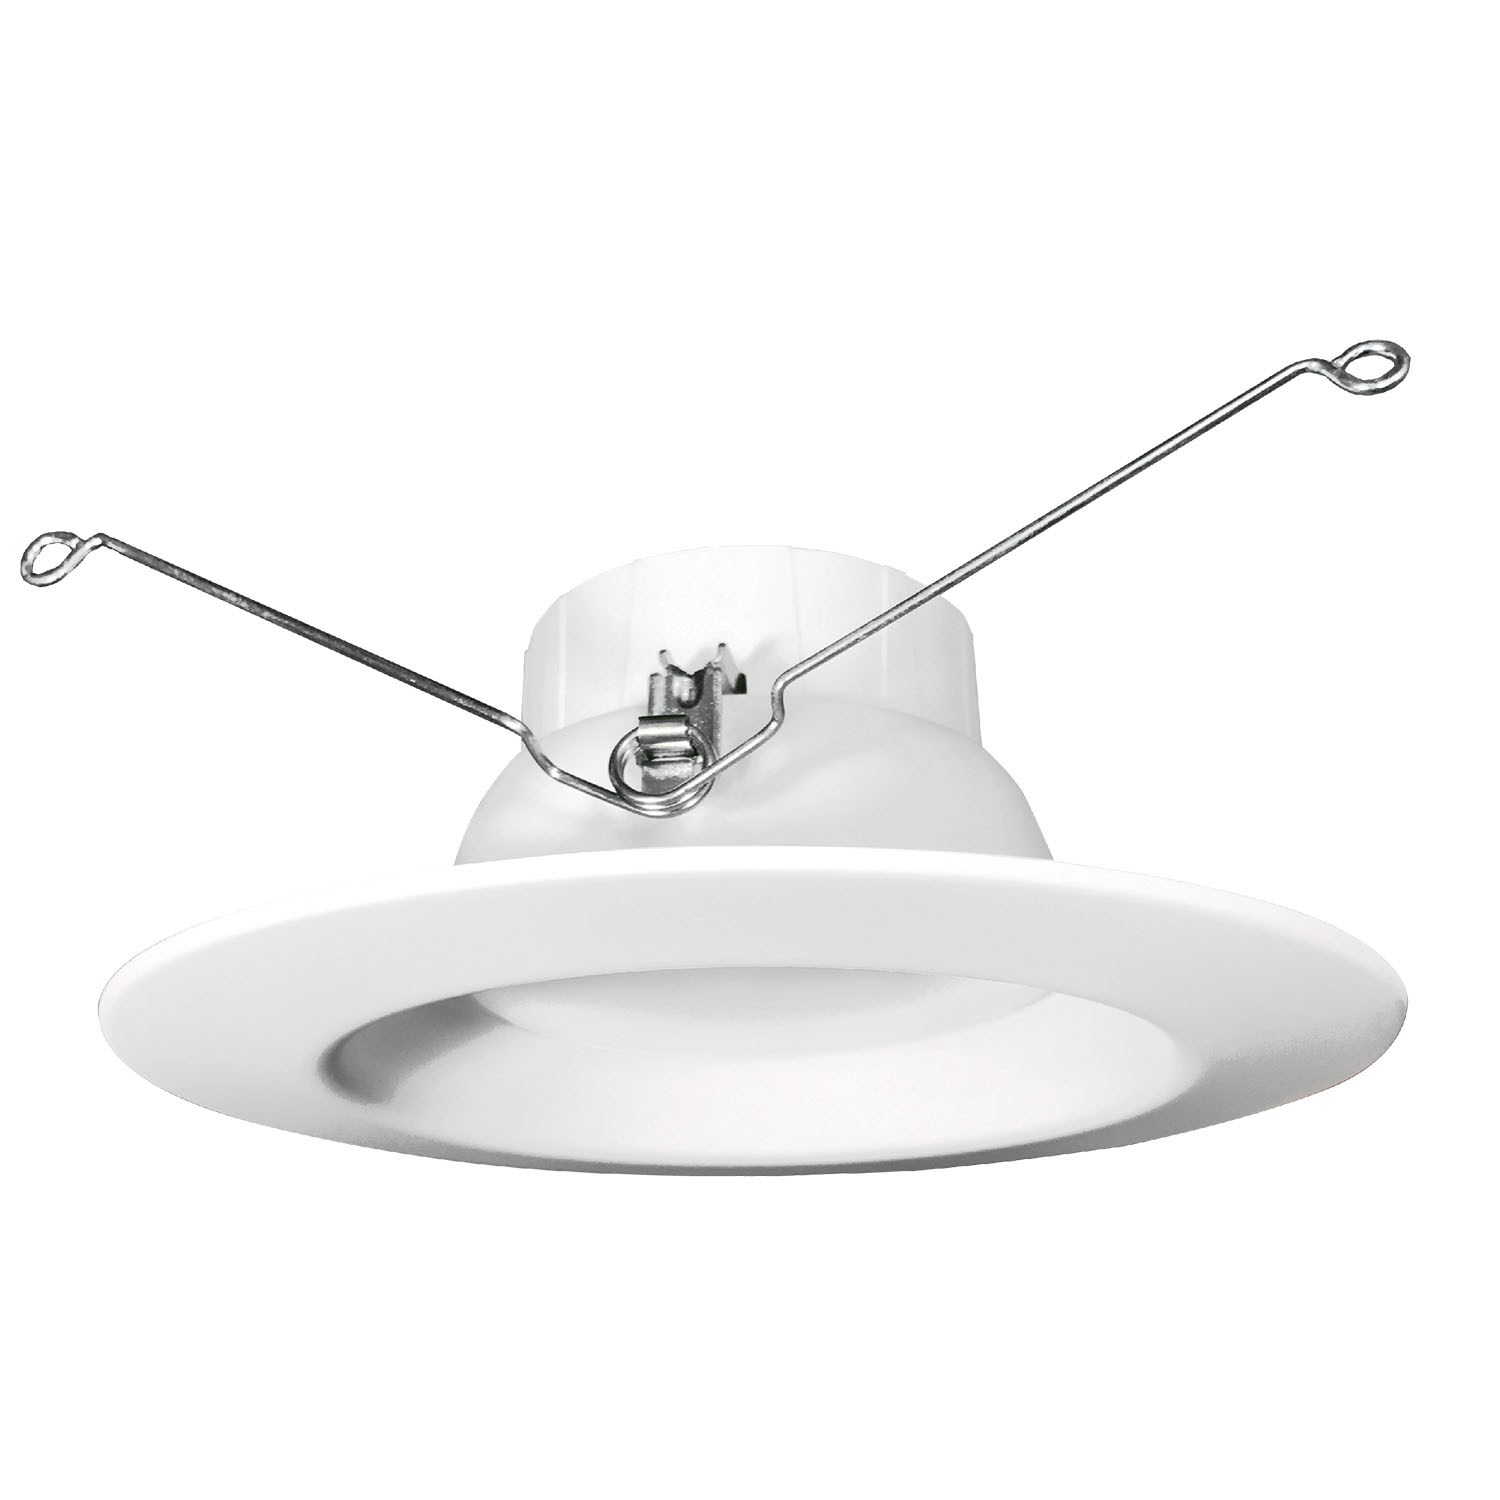 "DL6FR10/940/ECO/LED2 99639 6"" Retrofit Downlight, 10W, 4000K, Dimmable ProLED ECO Series II"